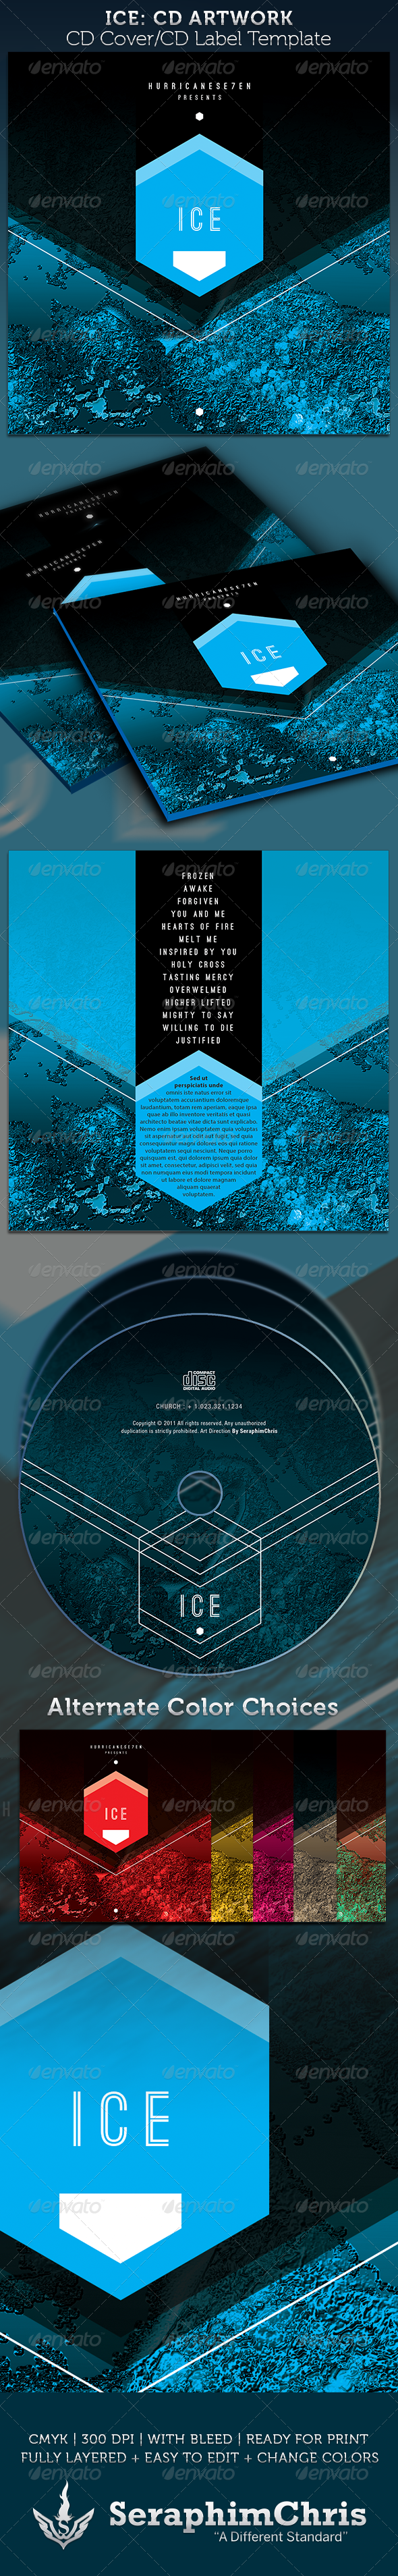 ICE CD Cover Artwork Template - CD & DVD Artwork Print Templates